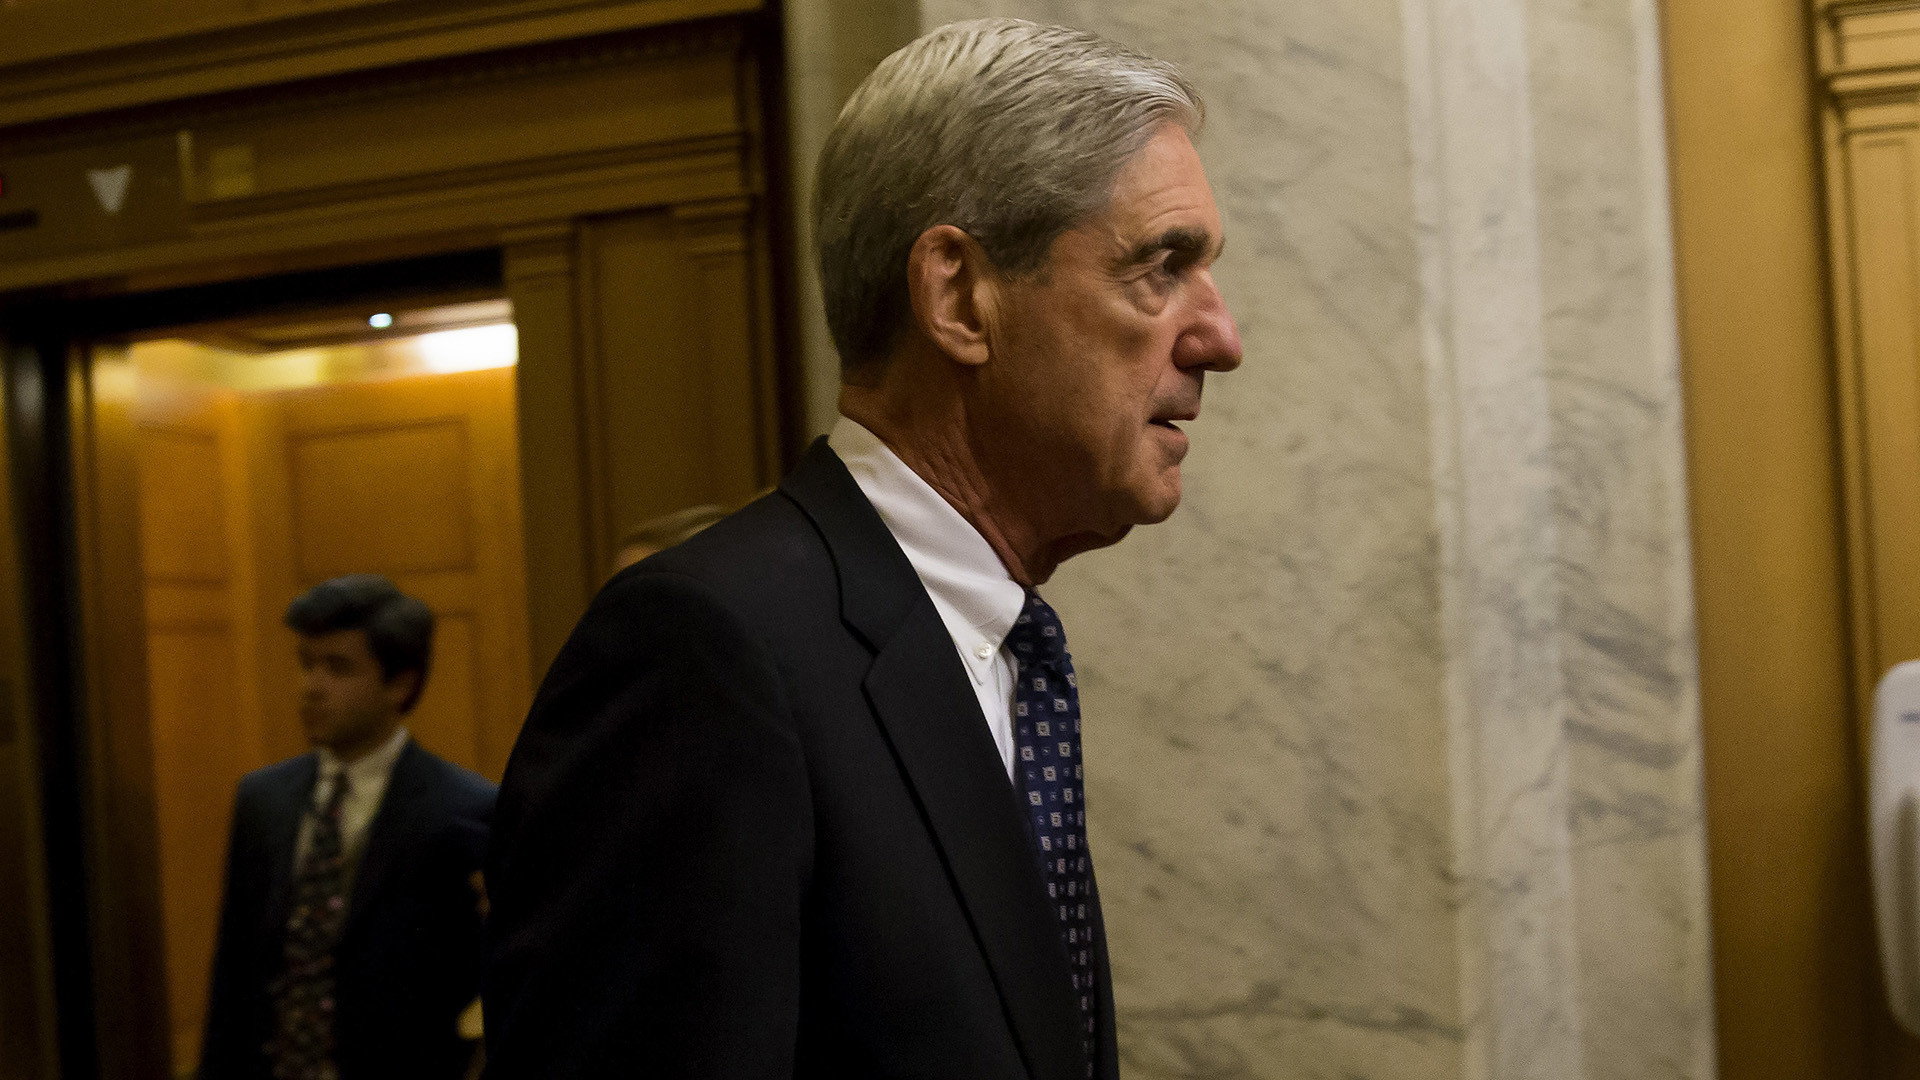 Mueller said to be ready to deliver key findings in Trump-Russia probe